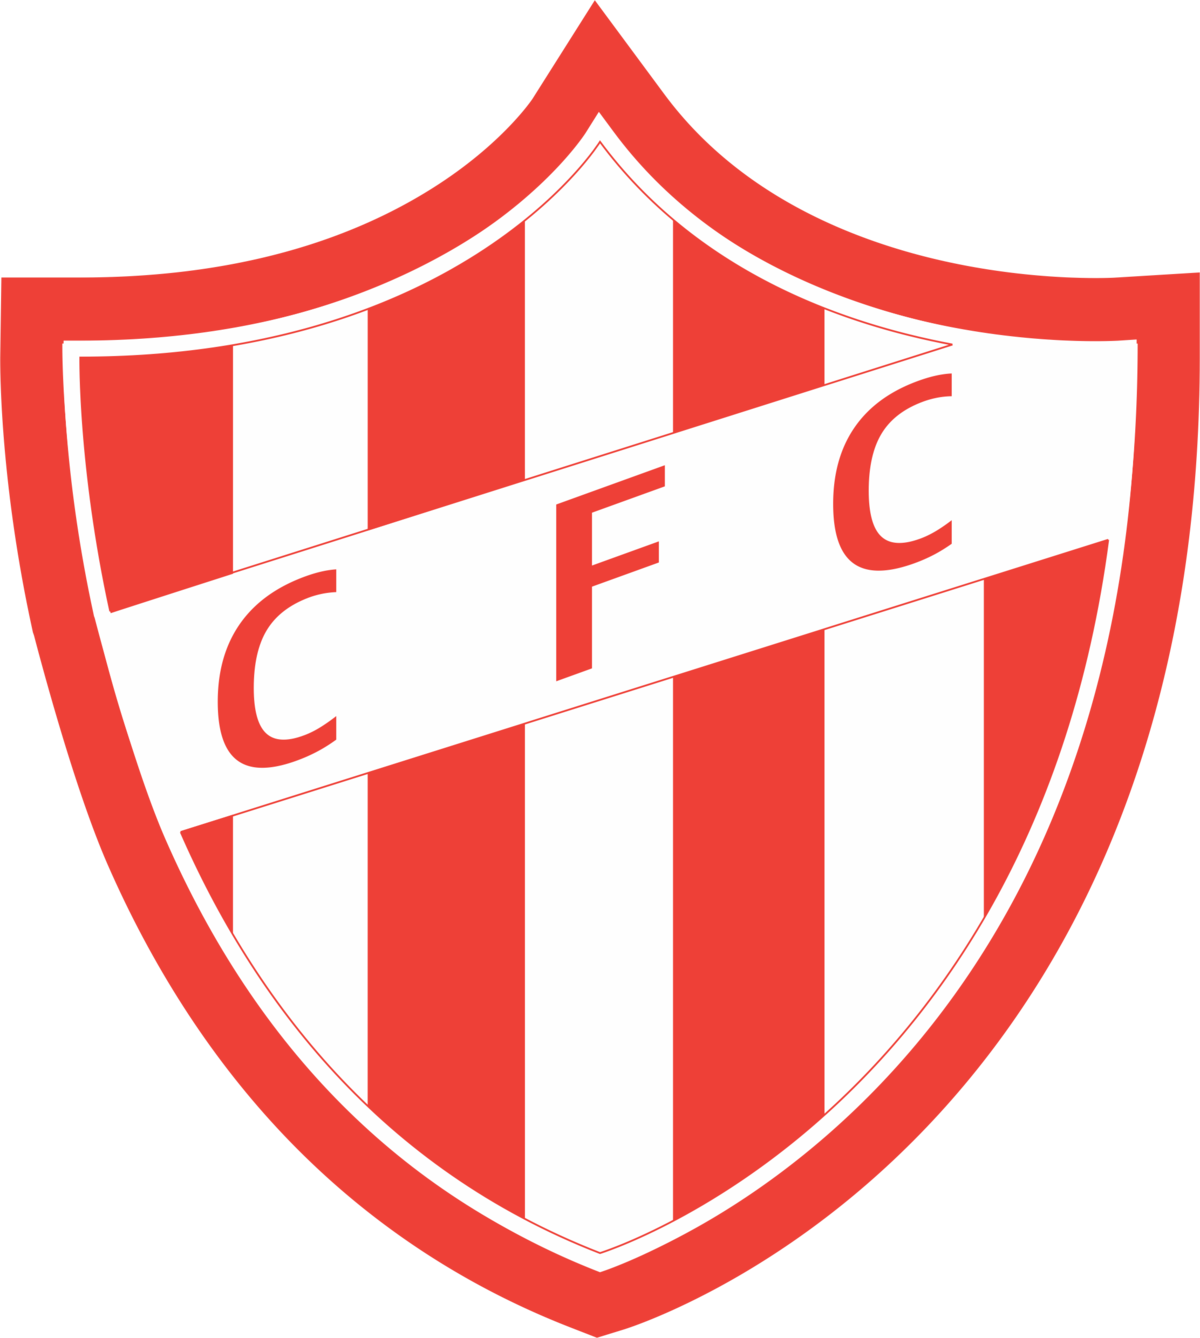 https://upload.wikimedia.org/wikipedia/commons/thumb/1/17/Canuelas_fc_logo.png/1200px-Canuelas_fc_logo.png